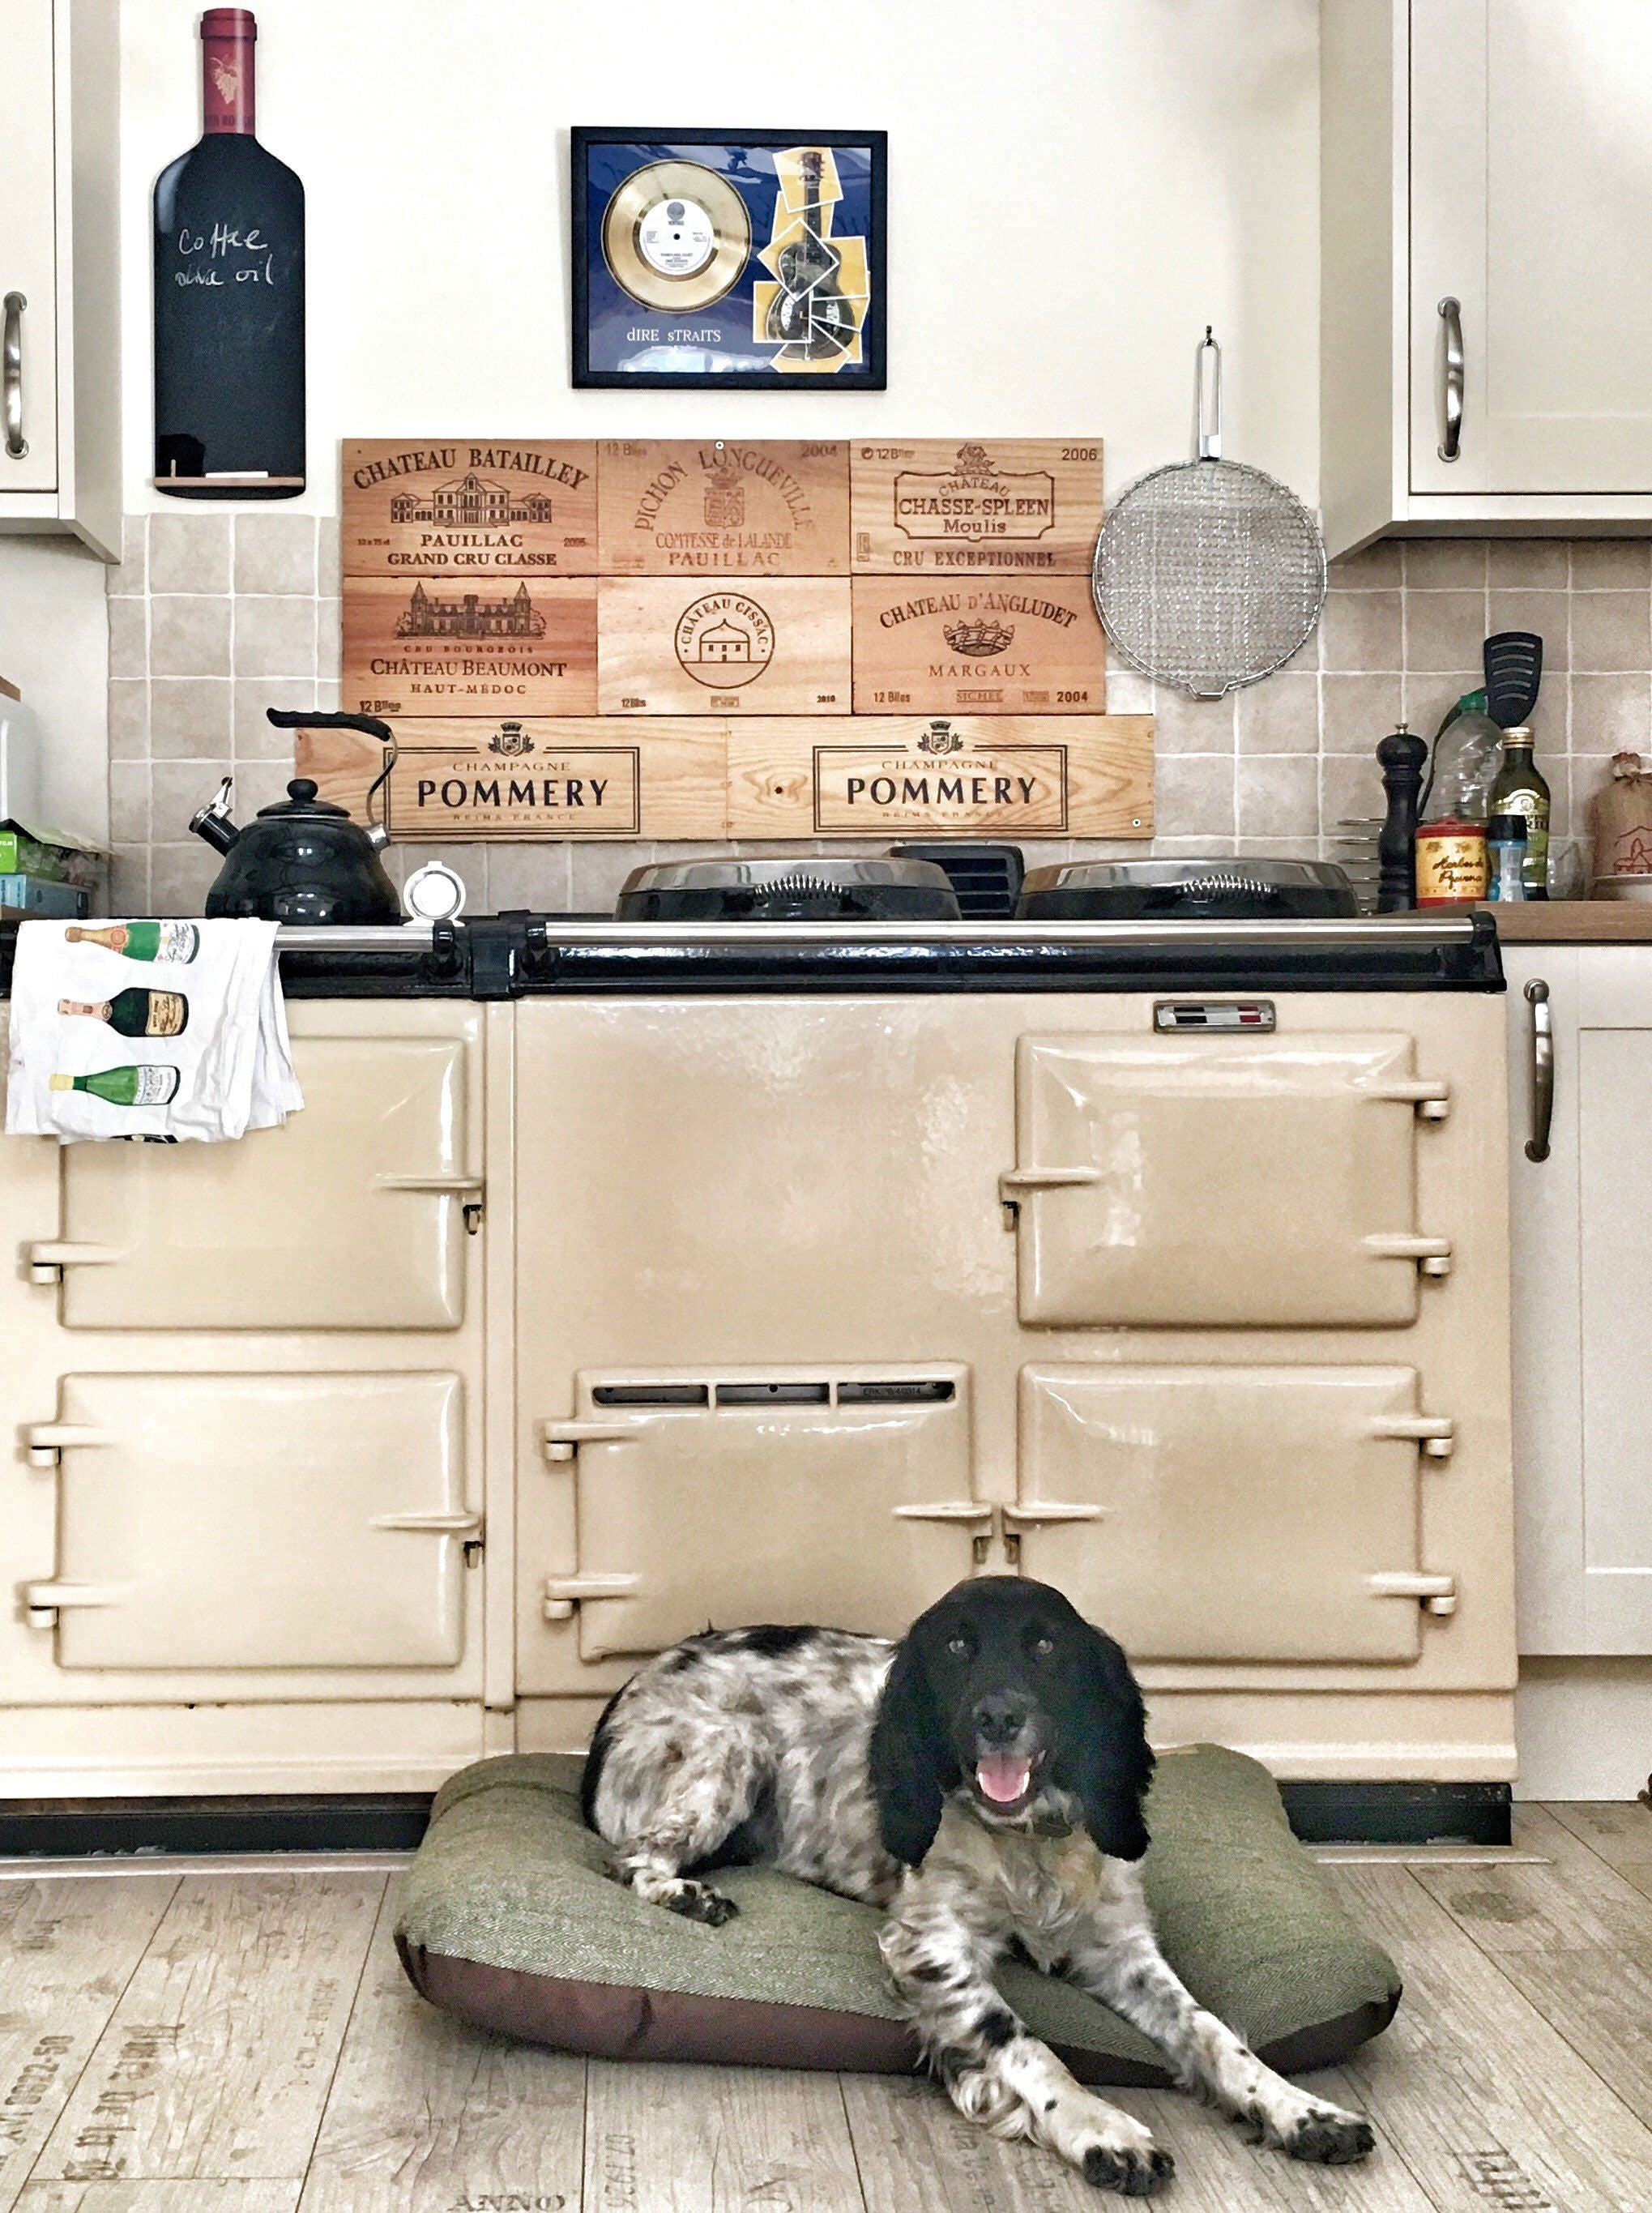 Aga range cooker, toaster and dog!